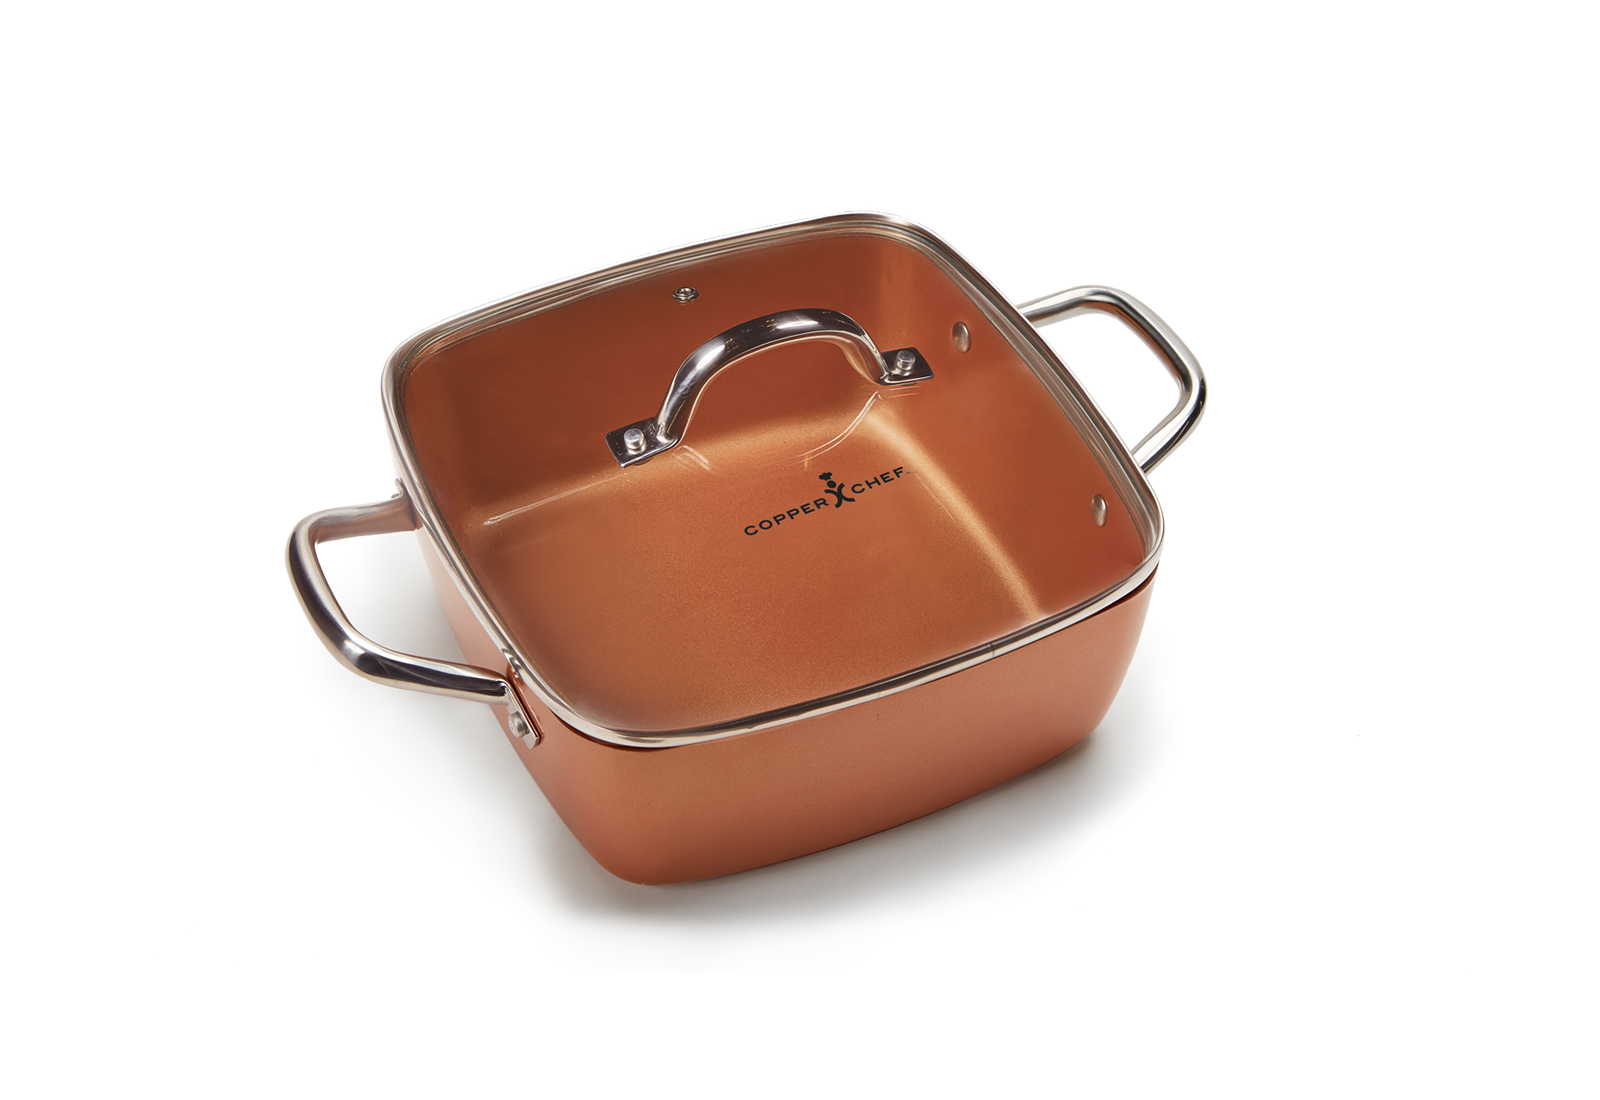 Copper Chef XL Casserole Pan Product Image